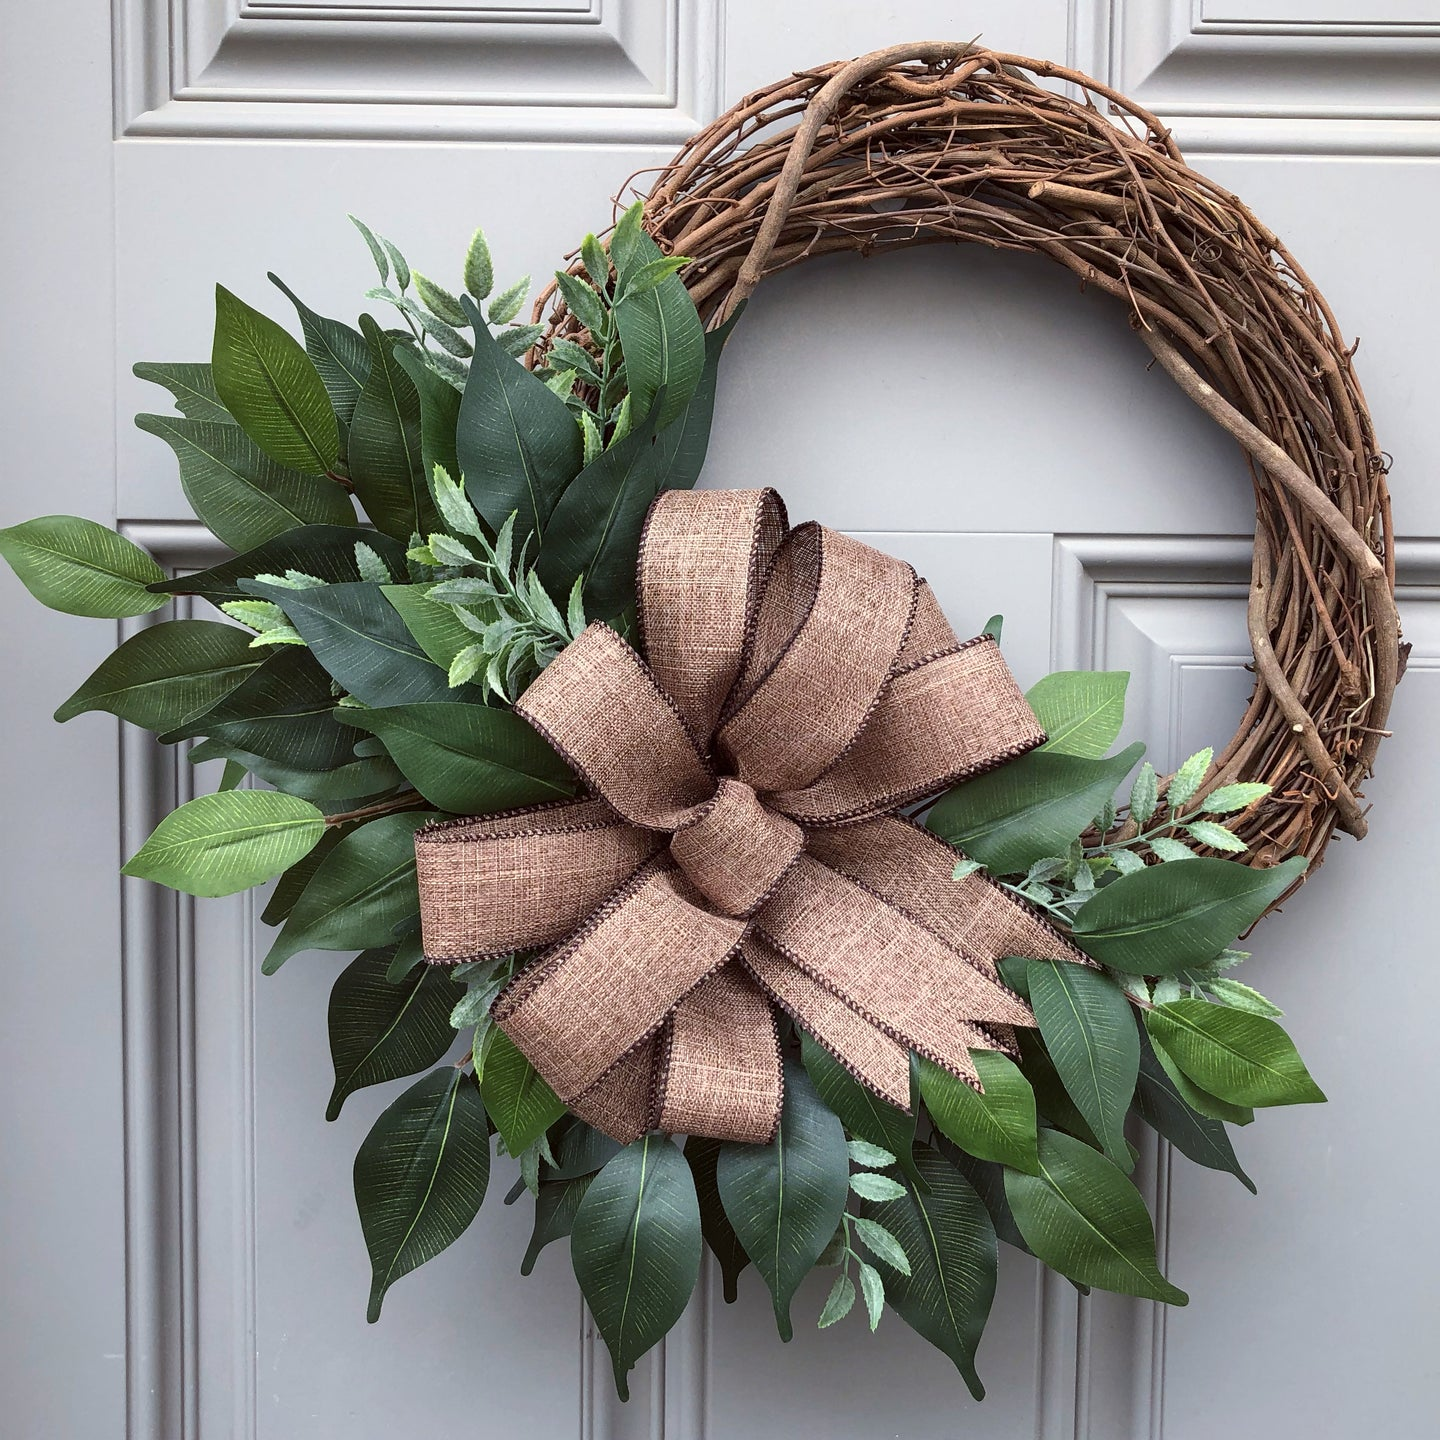 Small Greenery Wreath